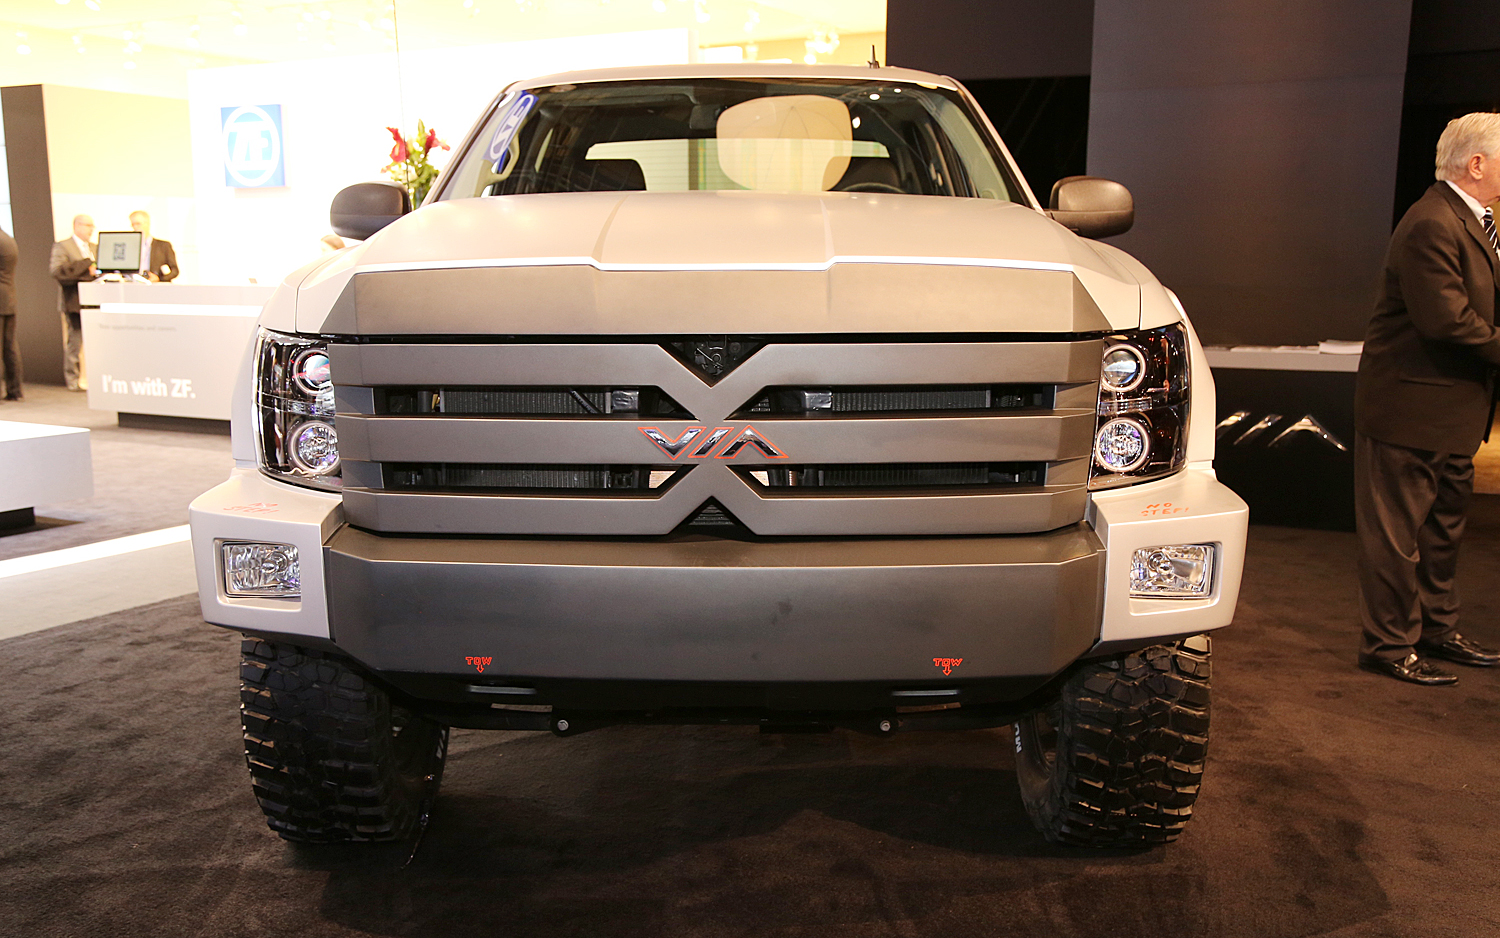 Chevrolet Silverado 2013 based Via X-Truck Via Motors is an American car-maker that specializes in custom electric vehicles,